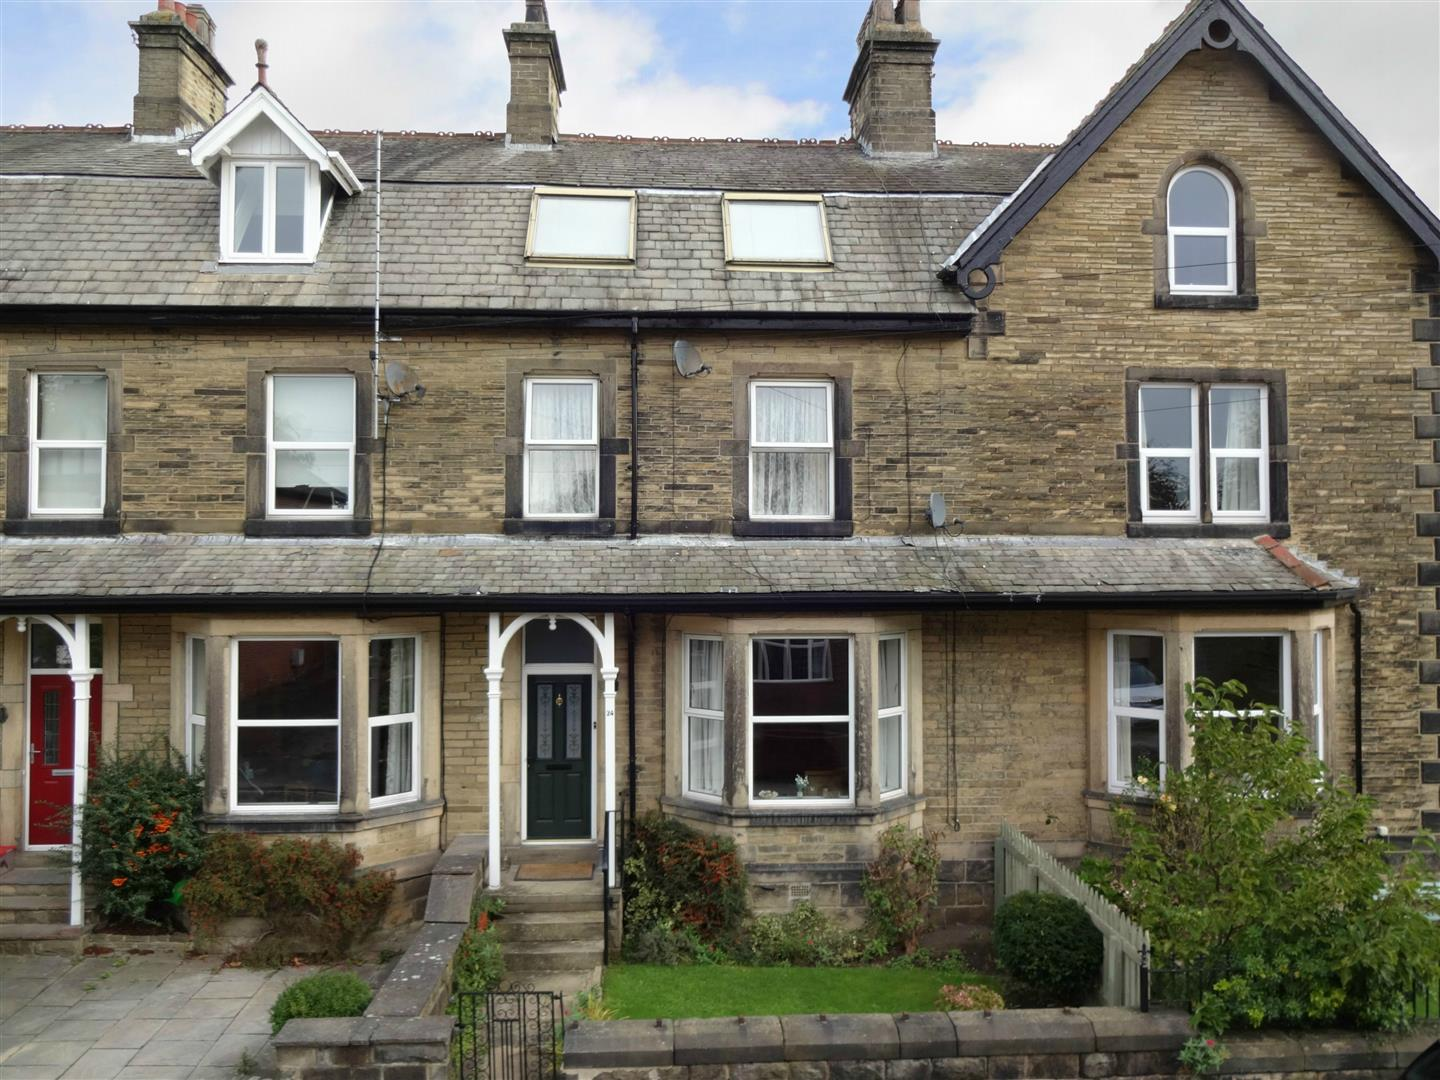 Grove Road, Menston, LS29 6JD